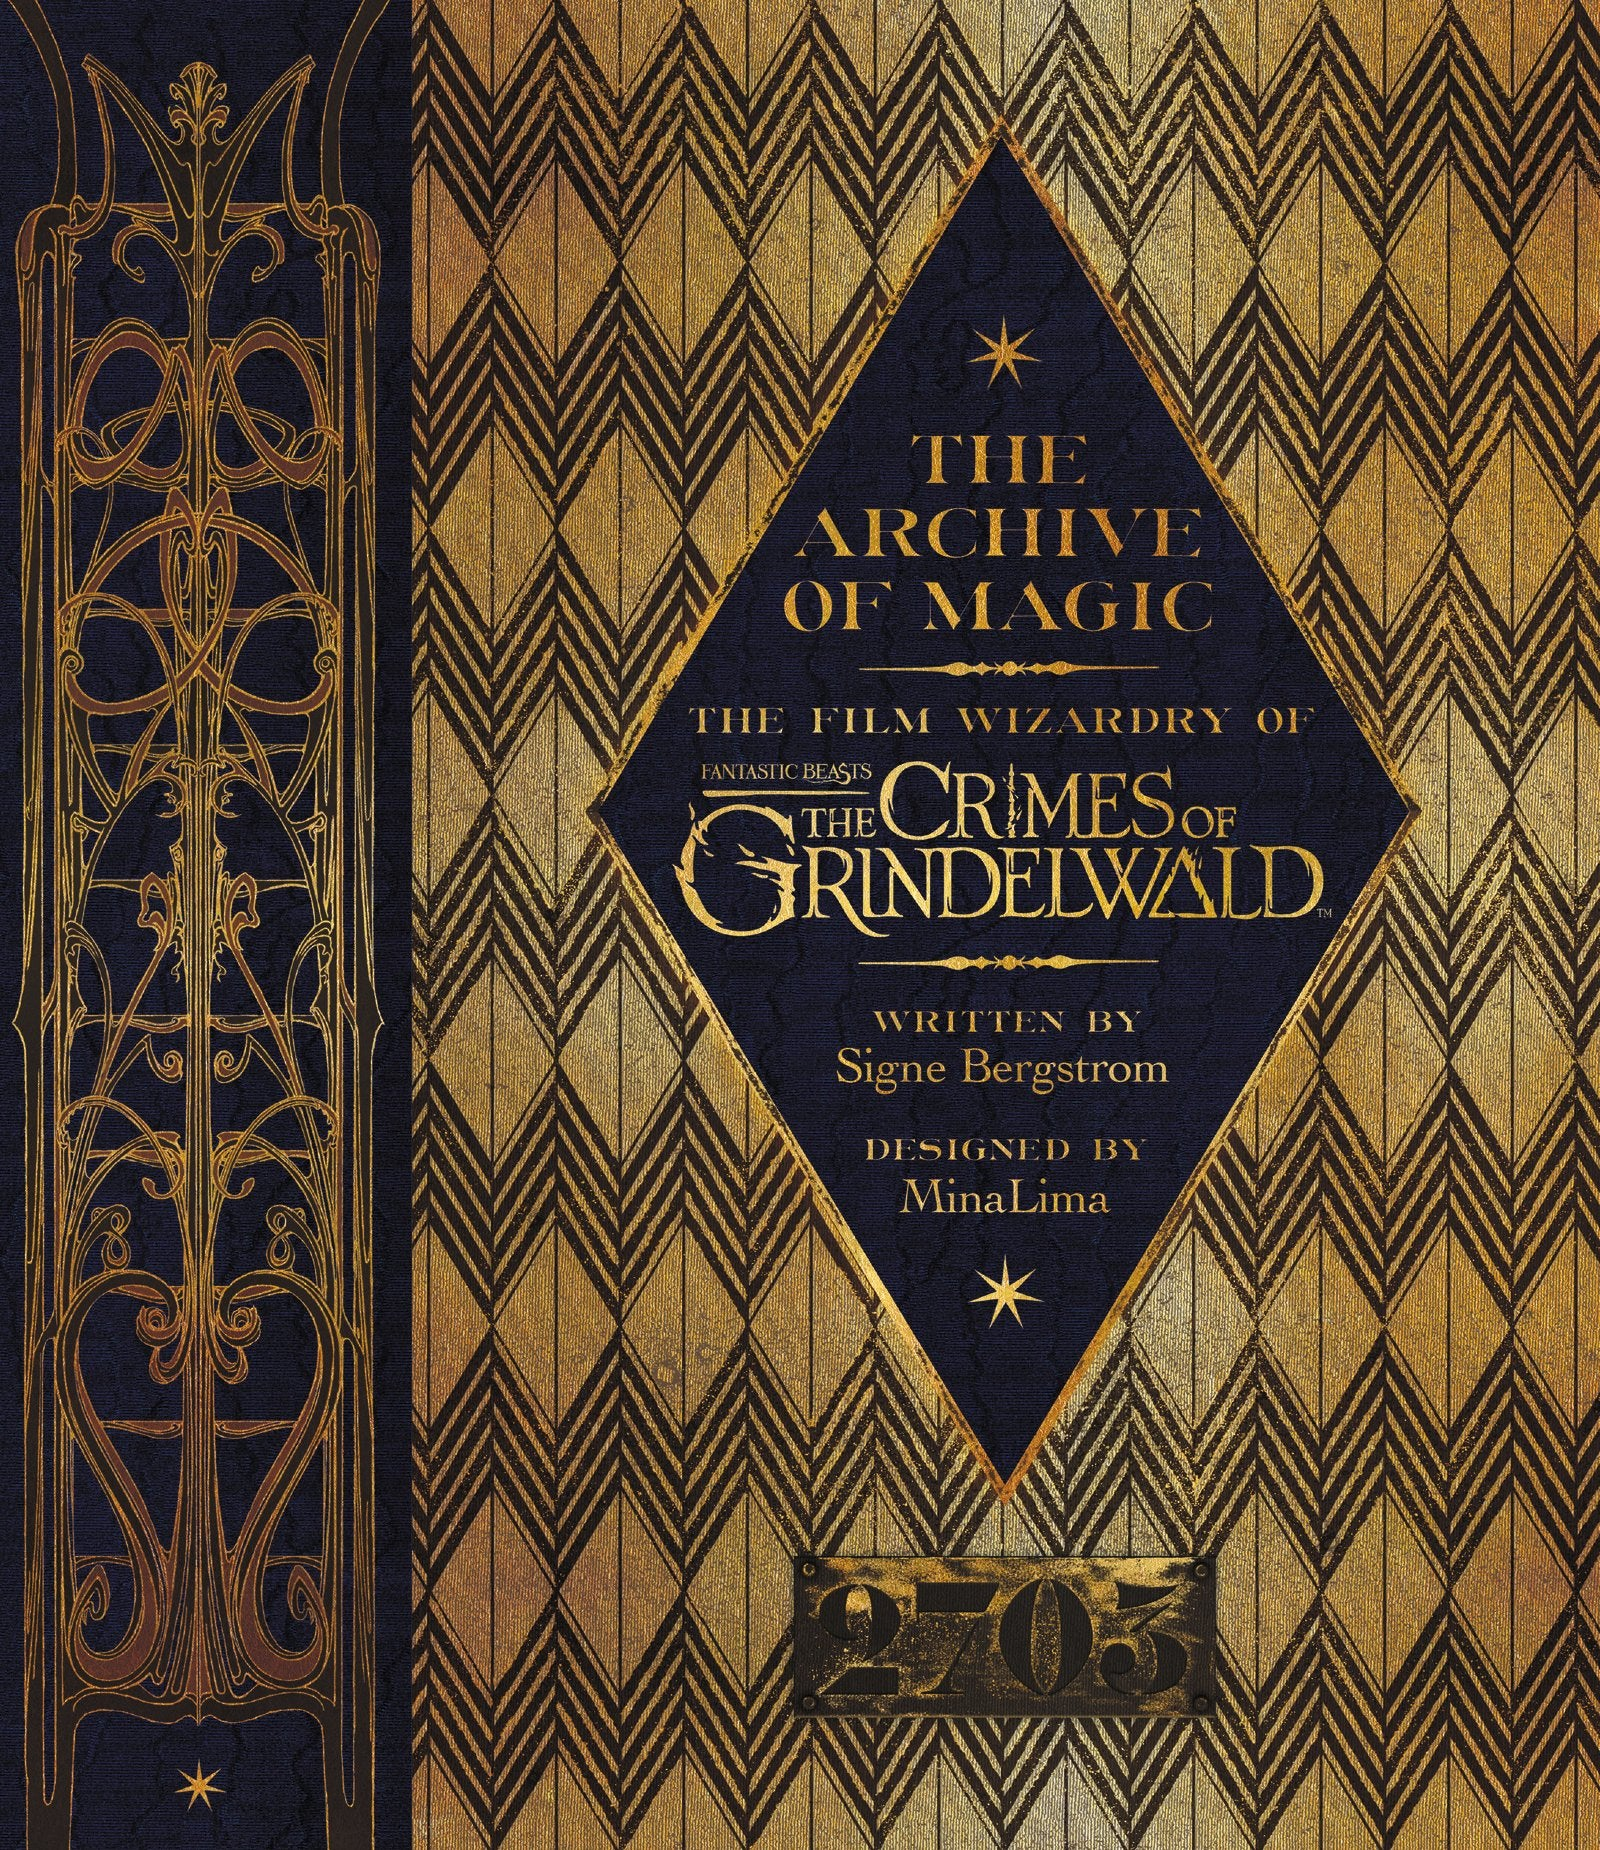 The Archive of Magic : The Film Wizardry of Fantastic Beasts : The Crimes of Grindelwald